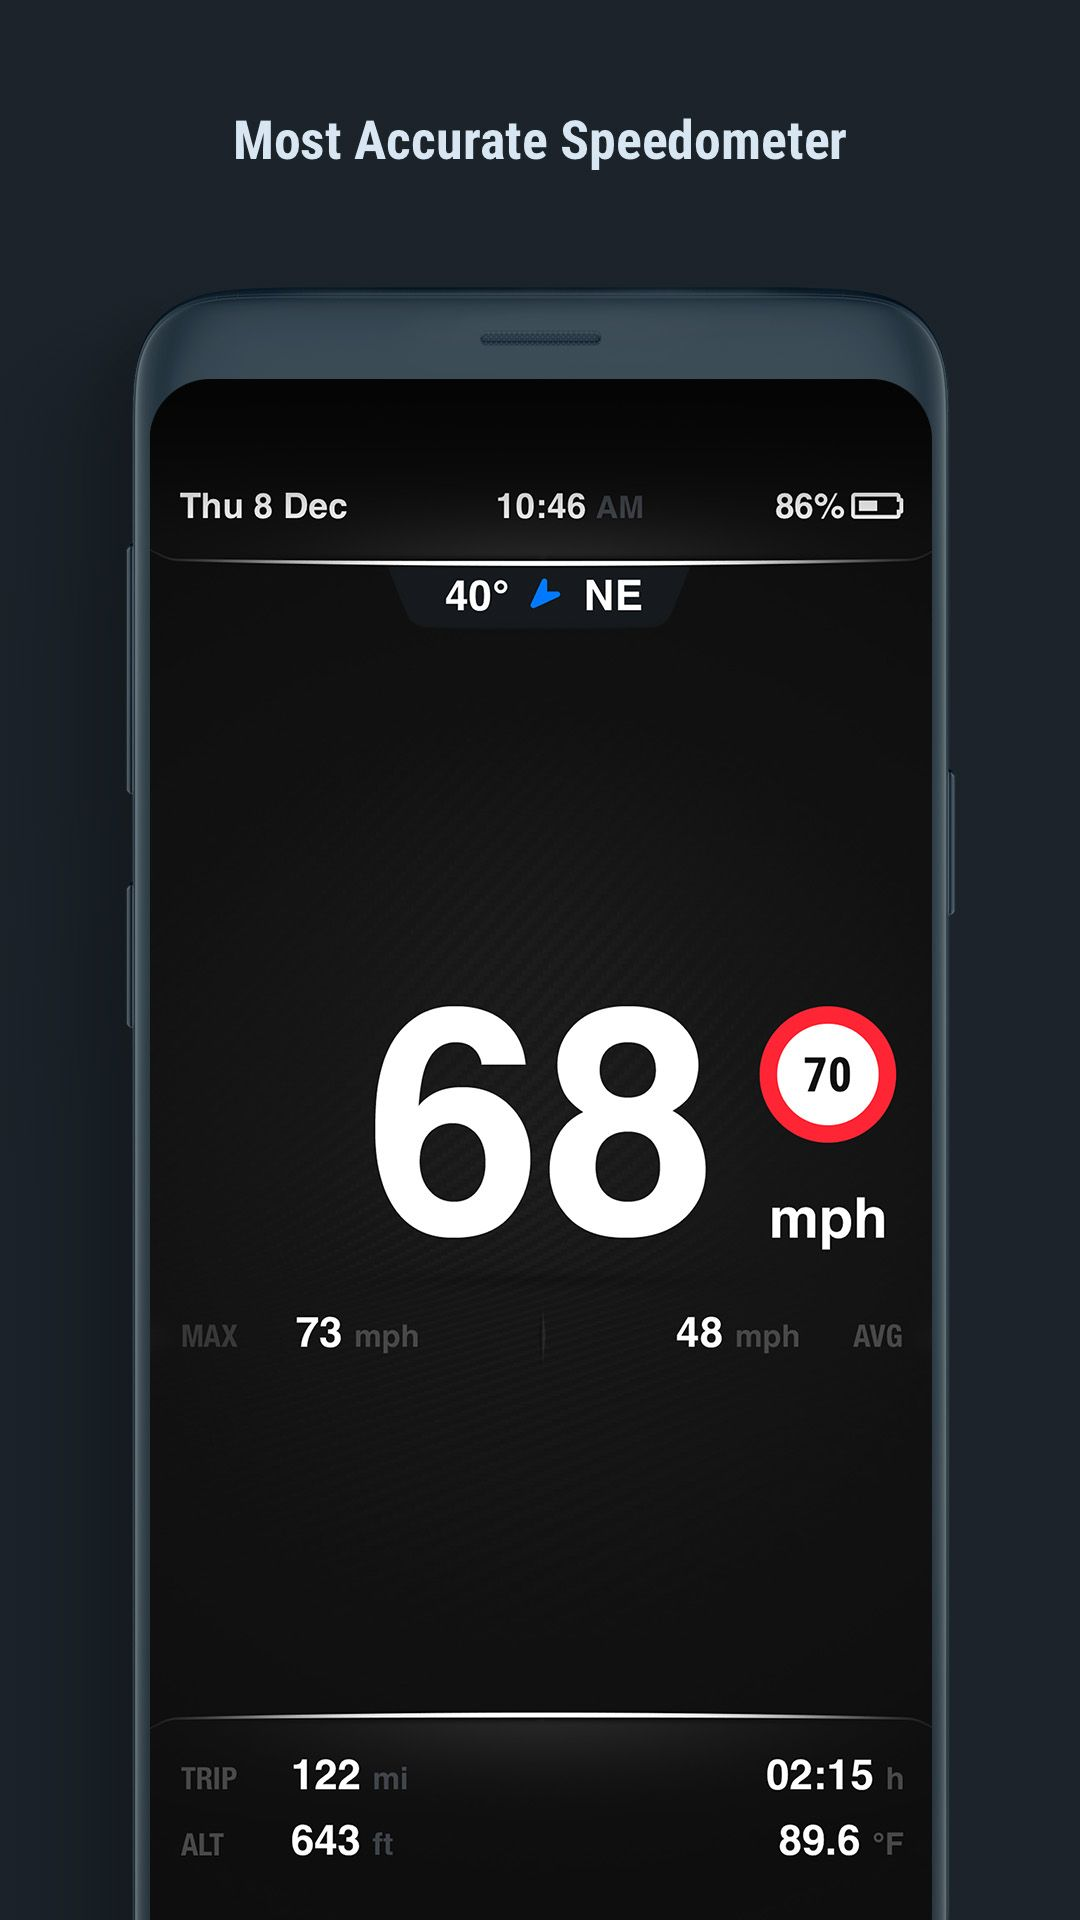 Speedometer. Accurate. Battery efficient. Easy to use